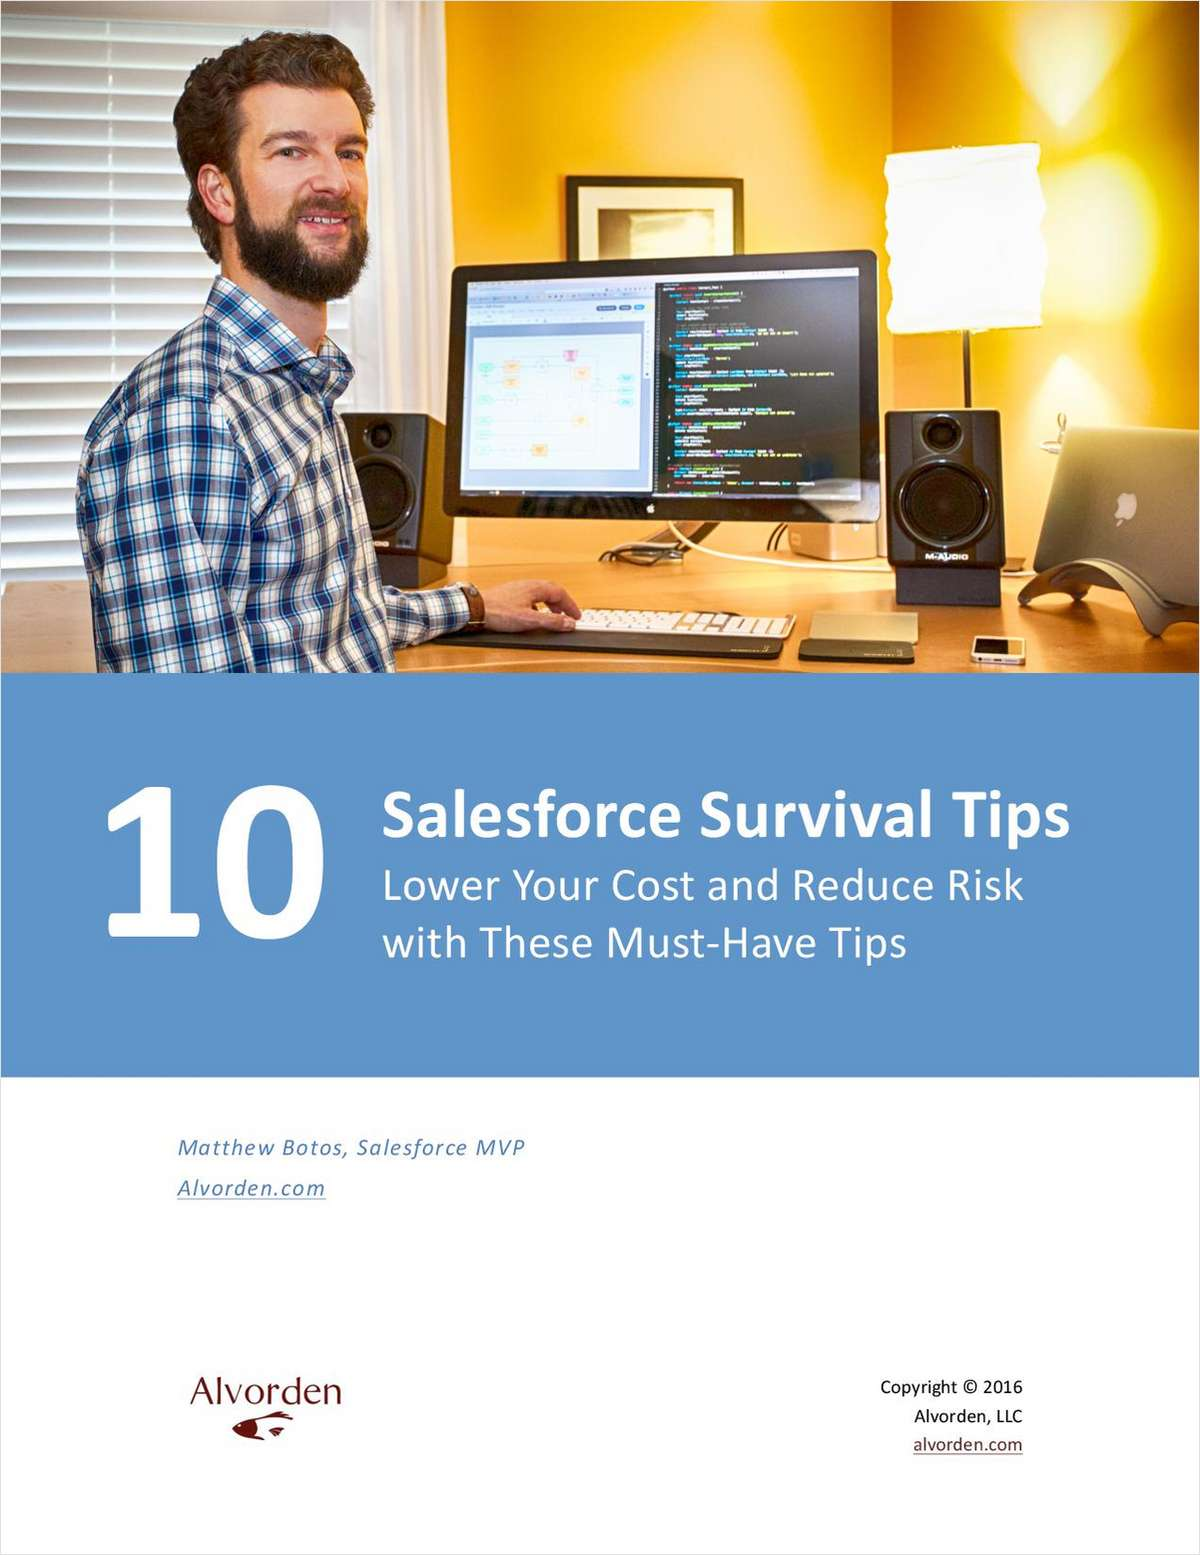 10 Salesforce Survival Tips